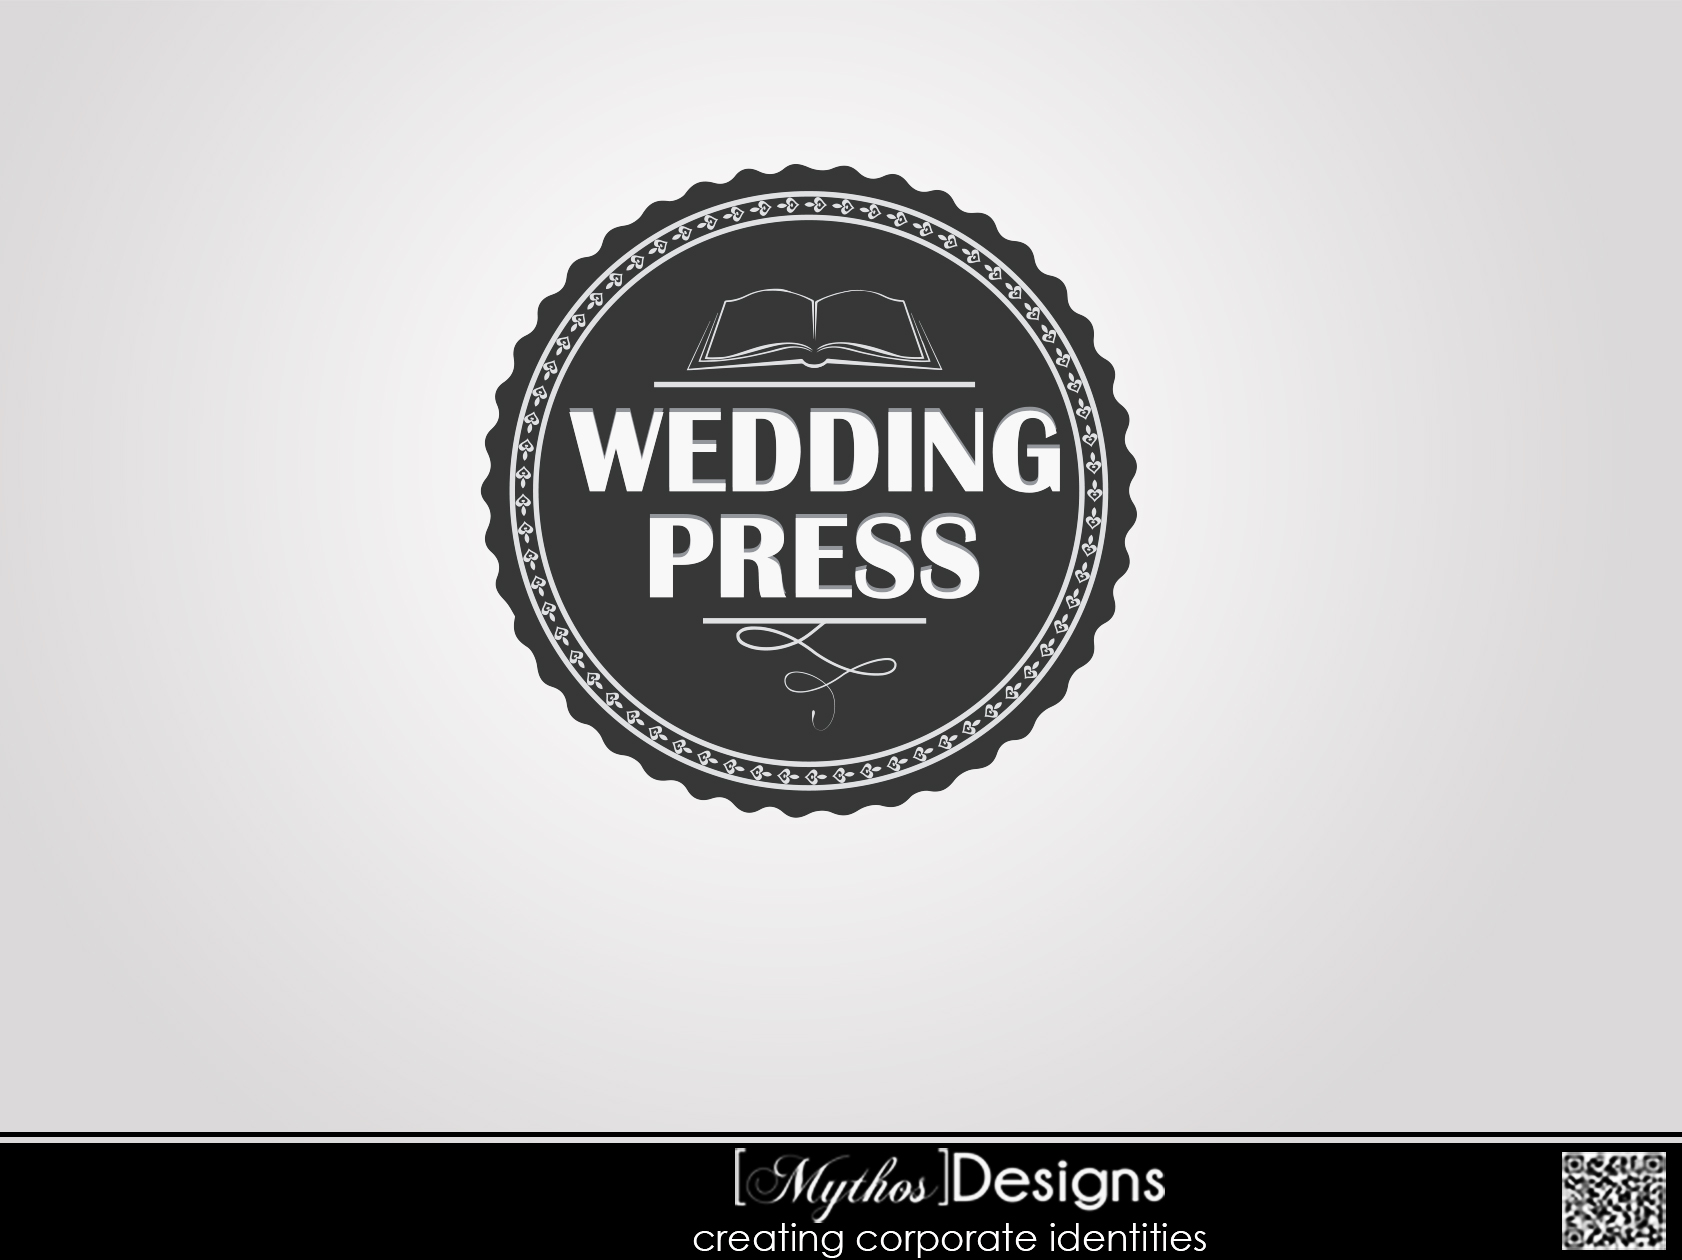 Logo Design by Mythos Designs - Entry No. 167 in the Logo Design Contest Wedding Writes Logo Design.